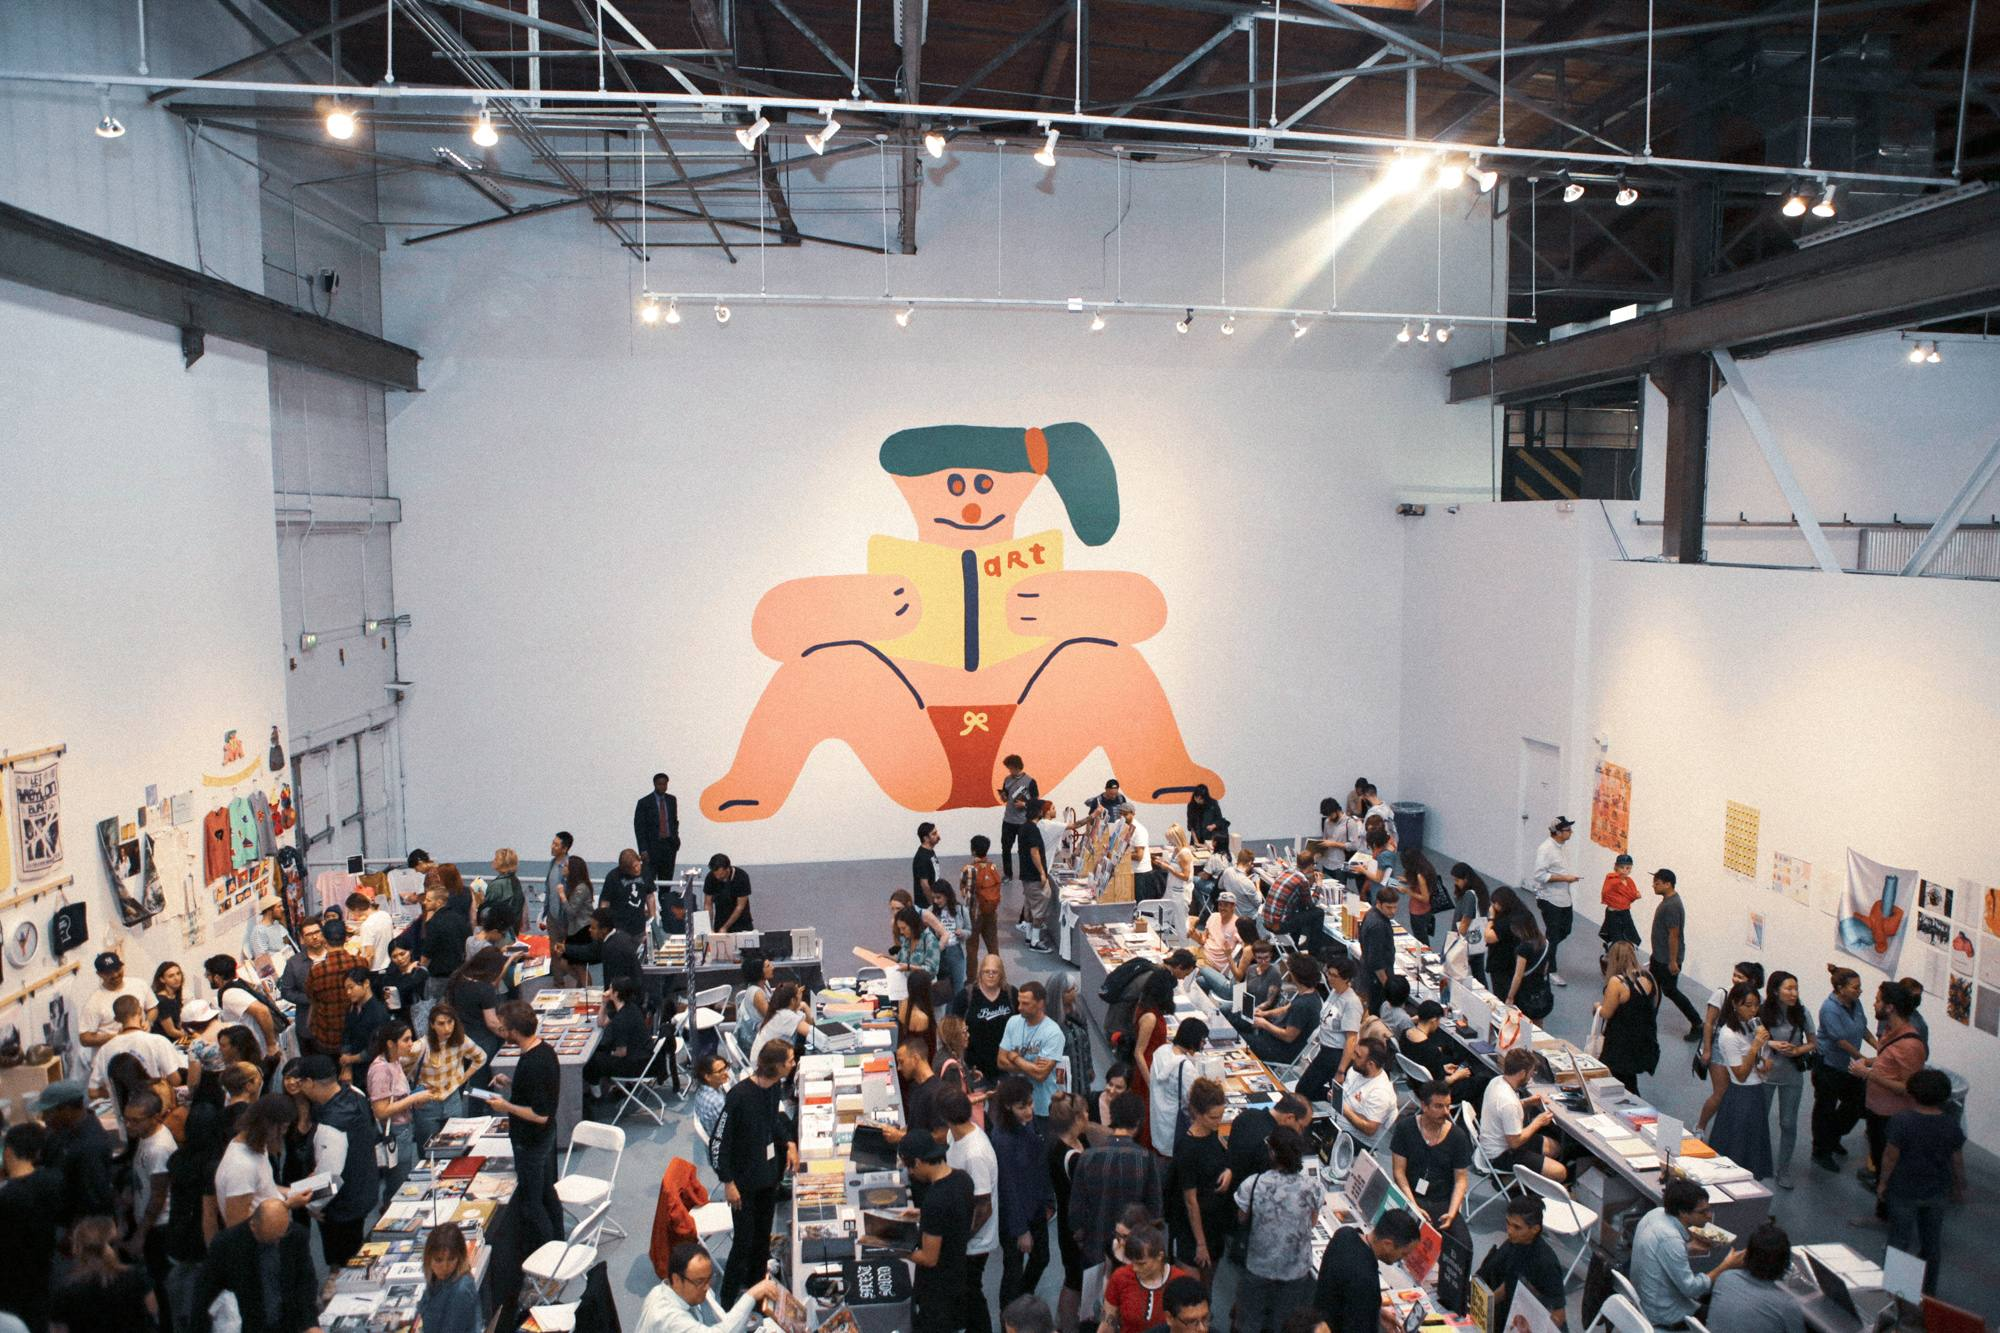 LA Art Book Fair at The Geffen Contemporary at MOCA